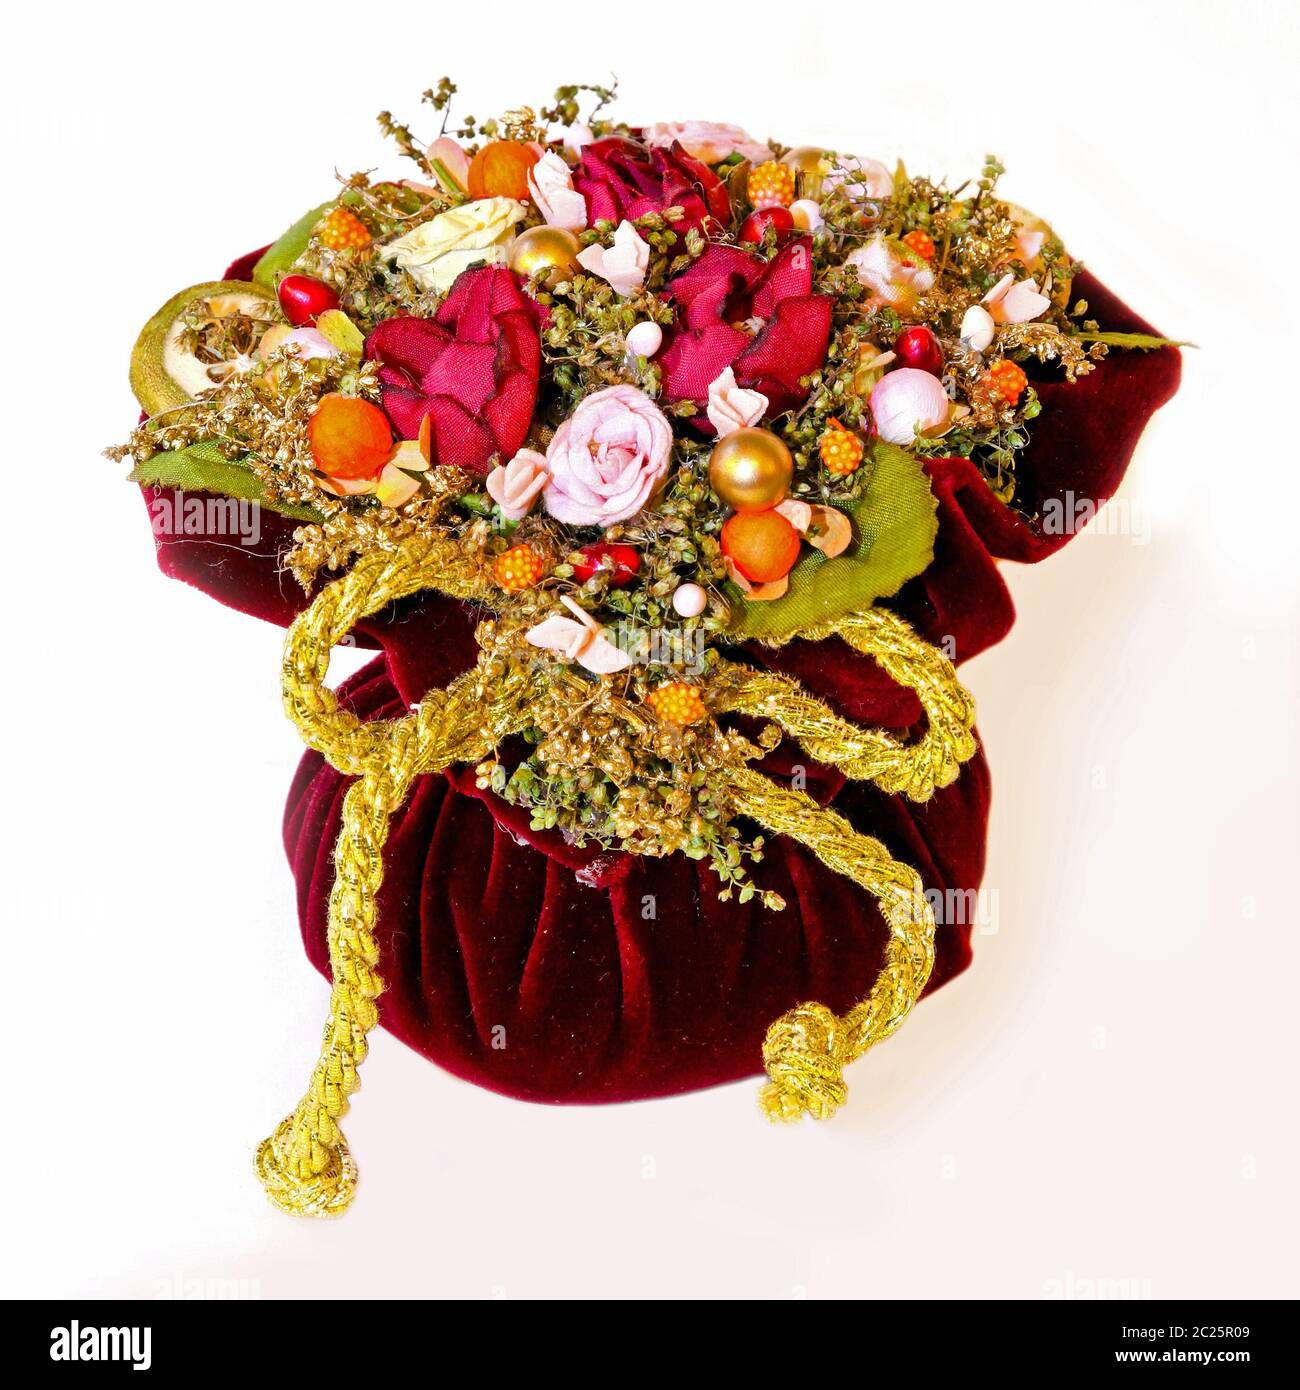 Dry Flowers Arrangement High Resolution Stock Photography And Images Alamy